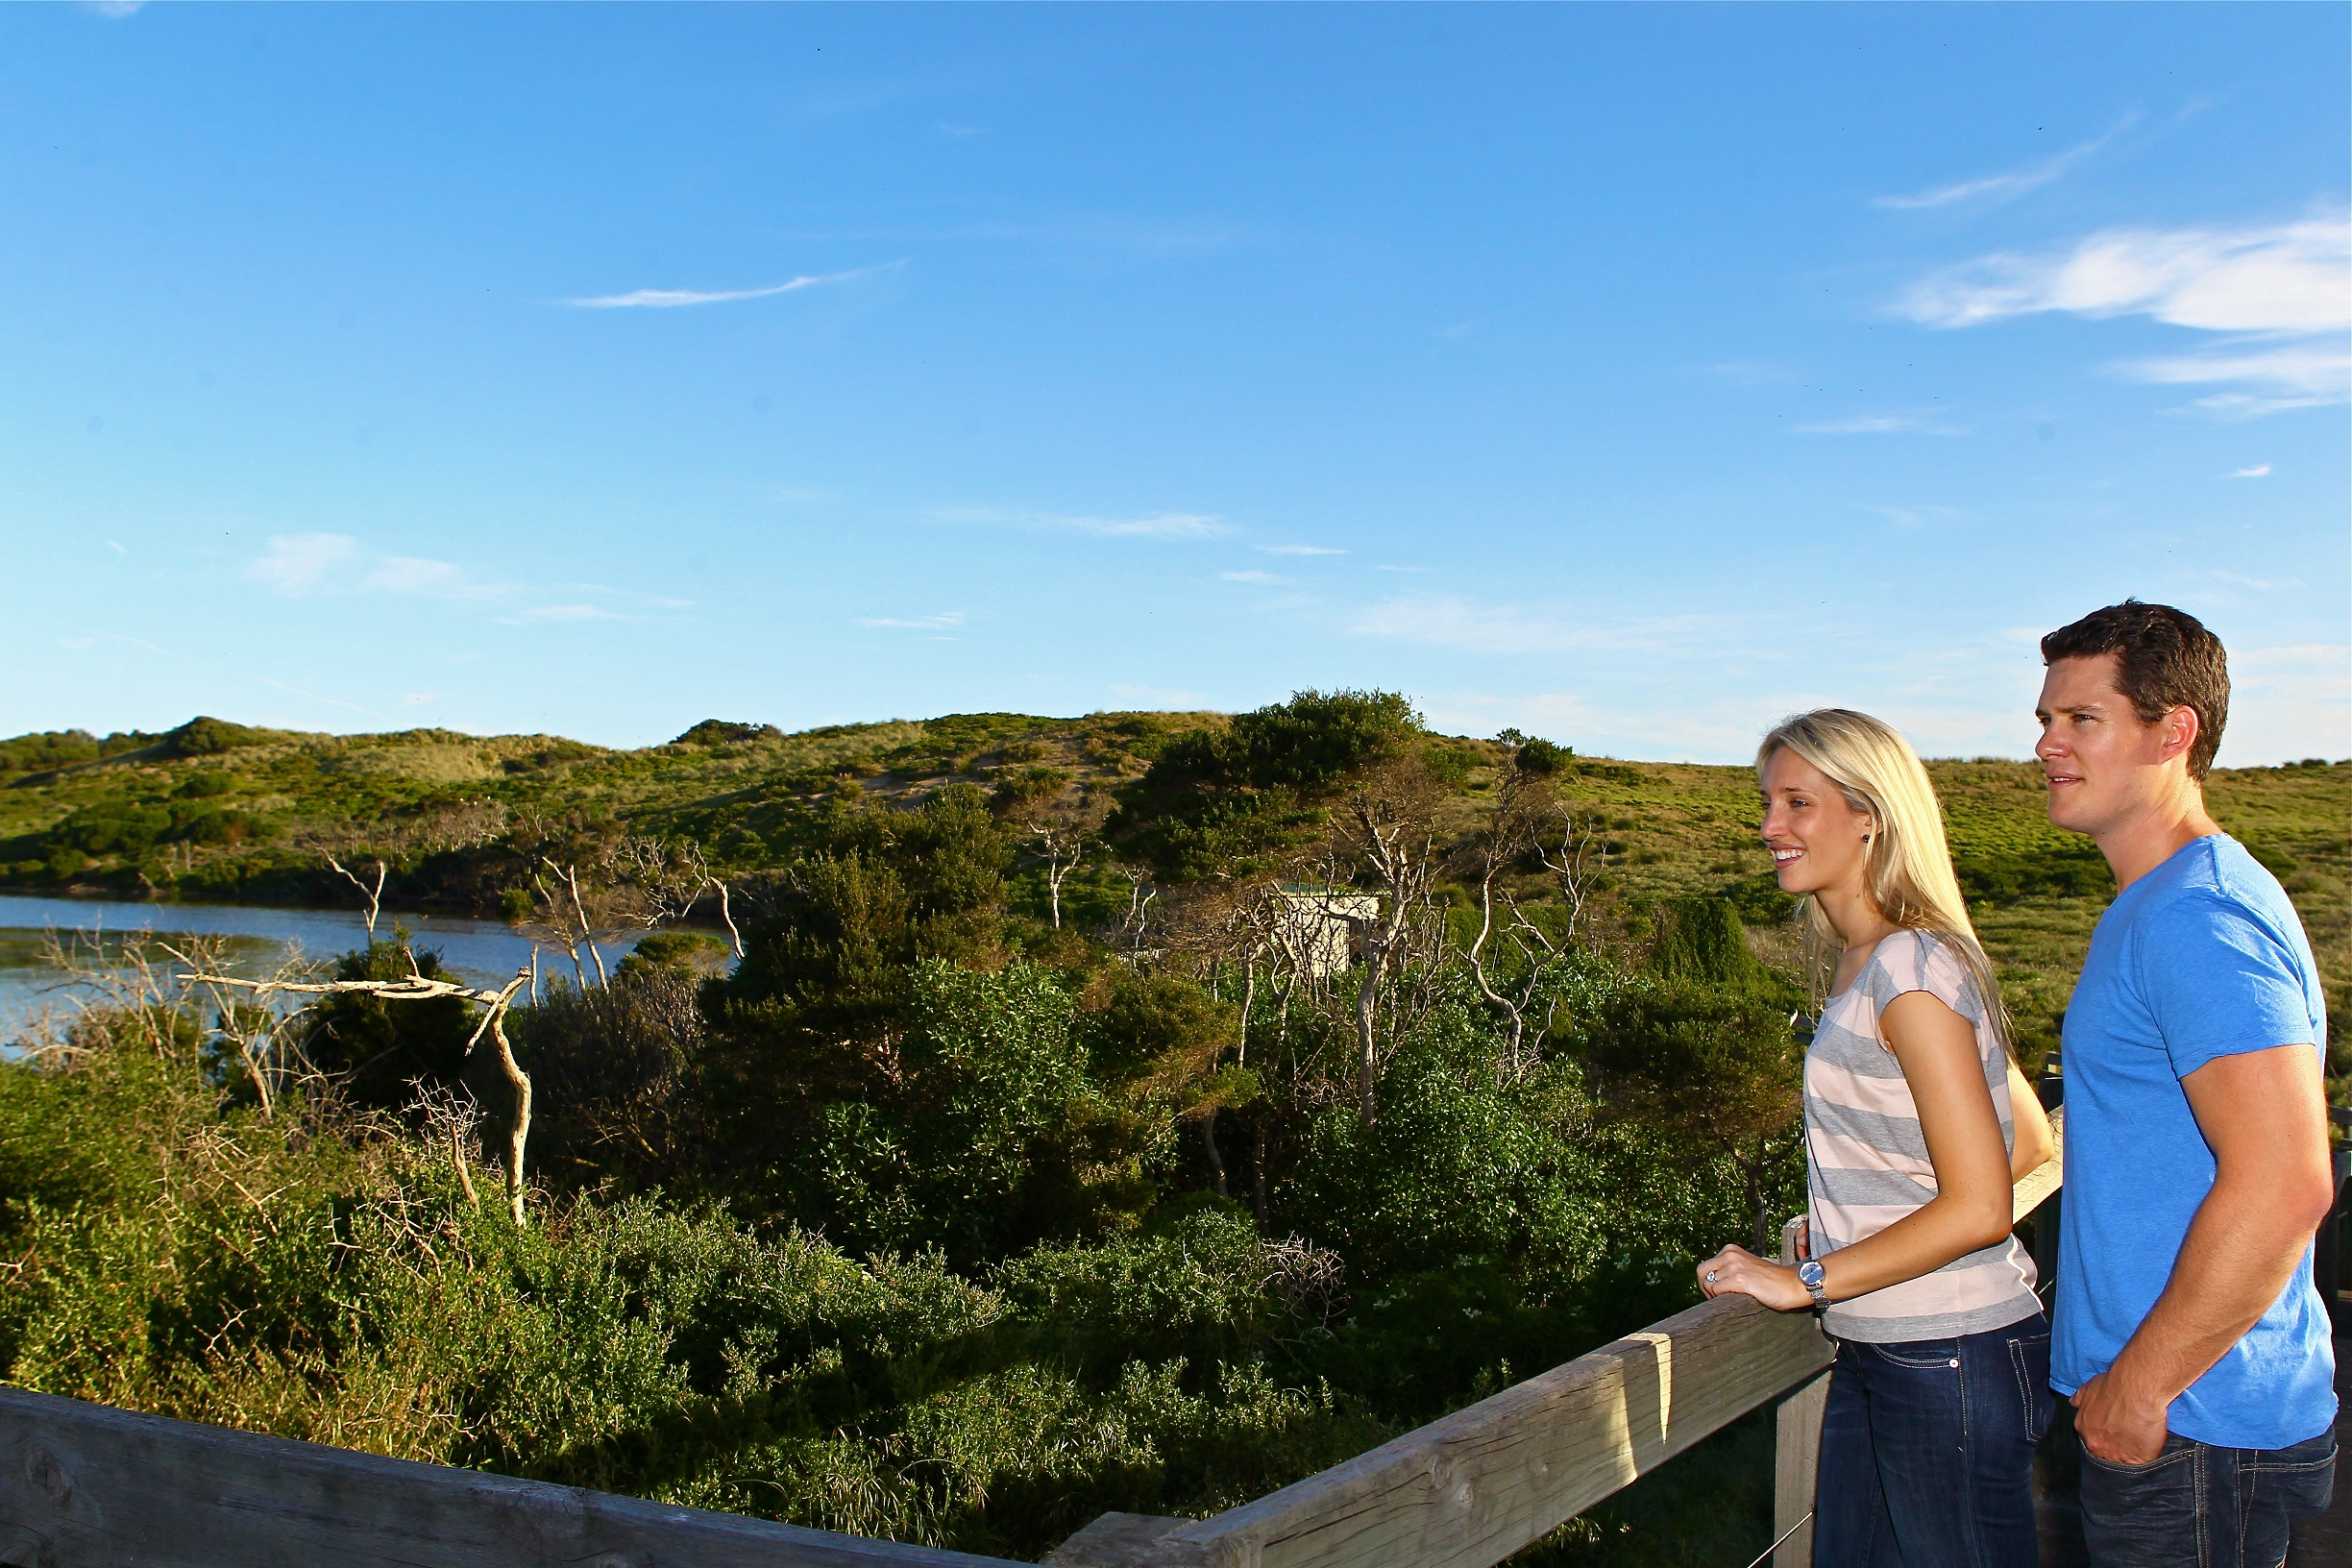 phillip island tour takes you on a unique guided walk to swan lake